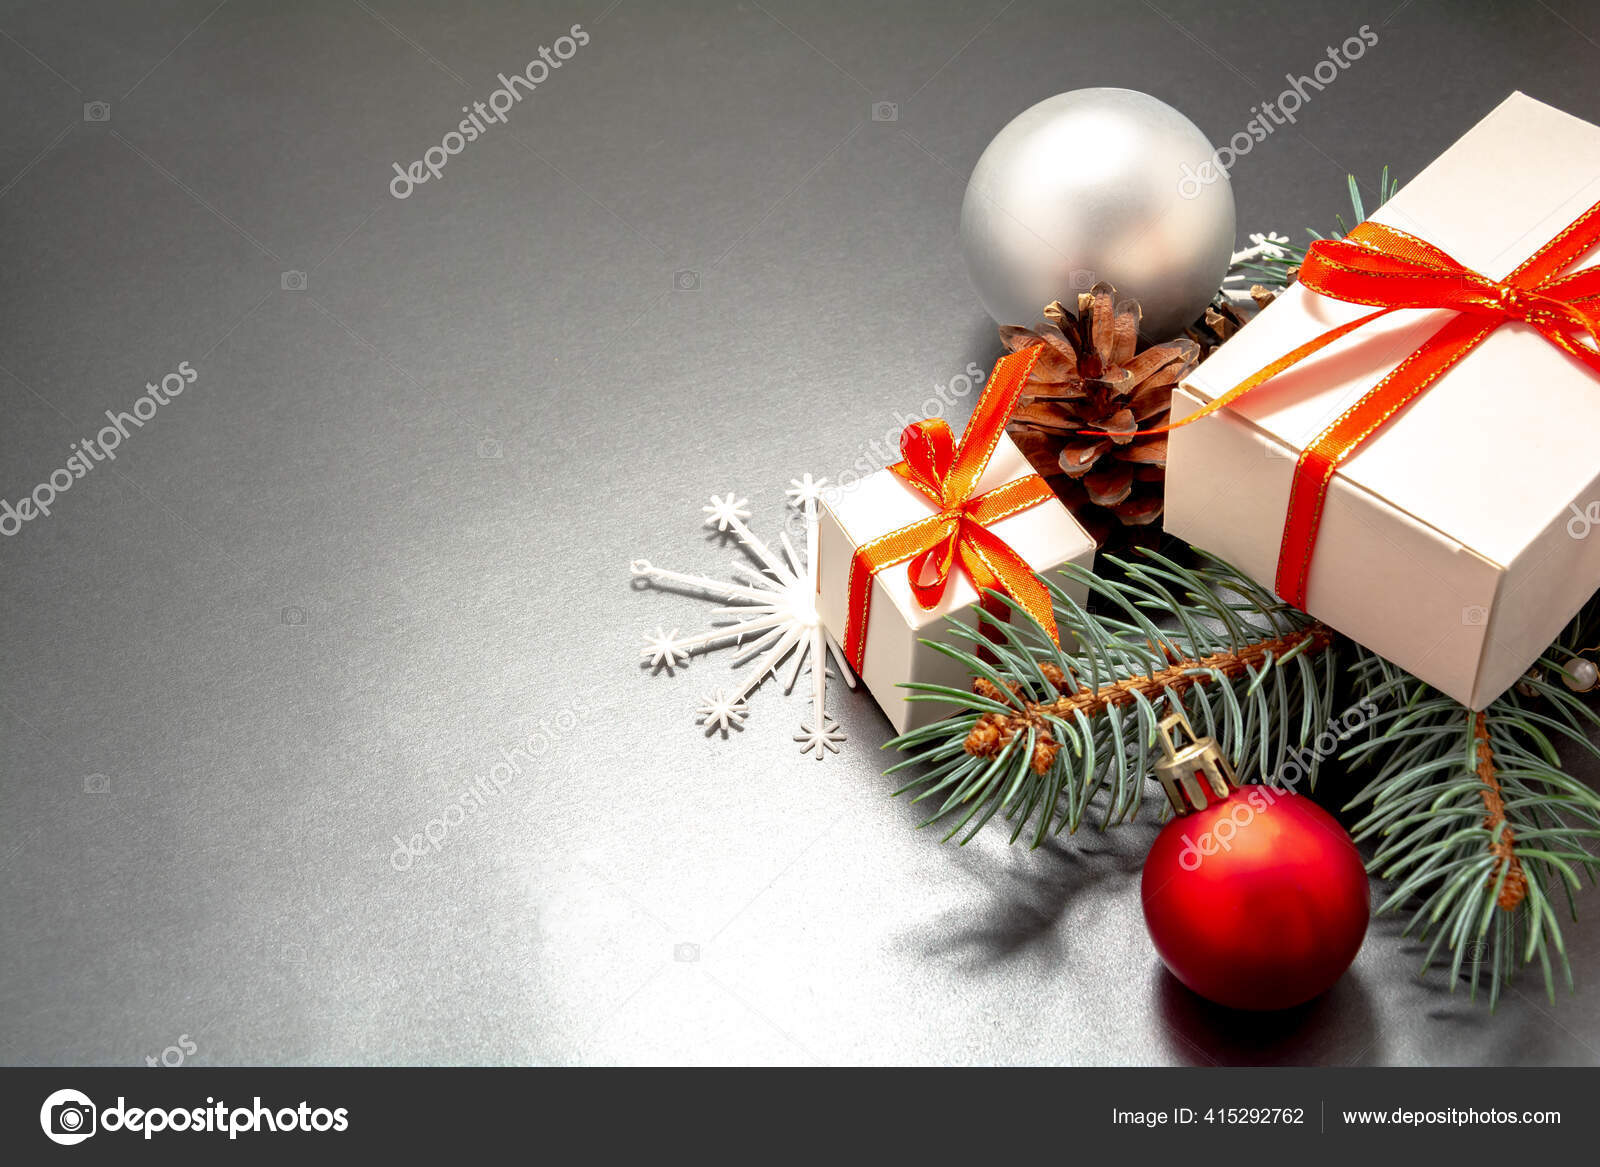 Christmas Ribbon 2021 2021 Happy New Year Merry Christmas Decorations Flatlay Gift Boxes Stock Photo Image By C Smartha 415292762